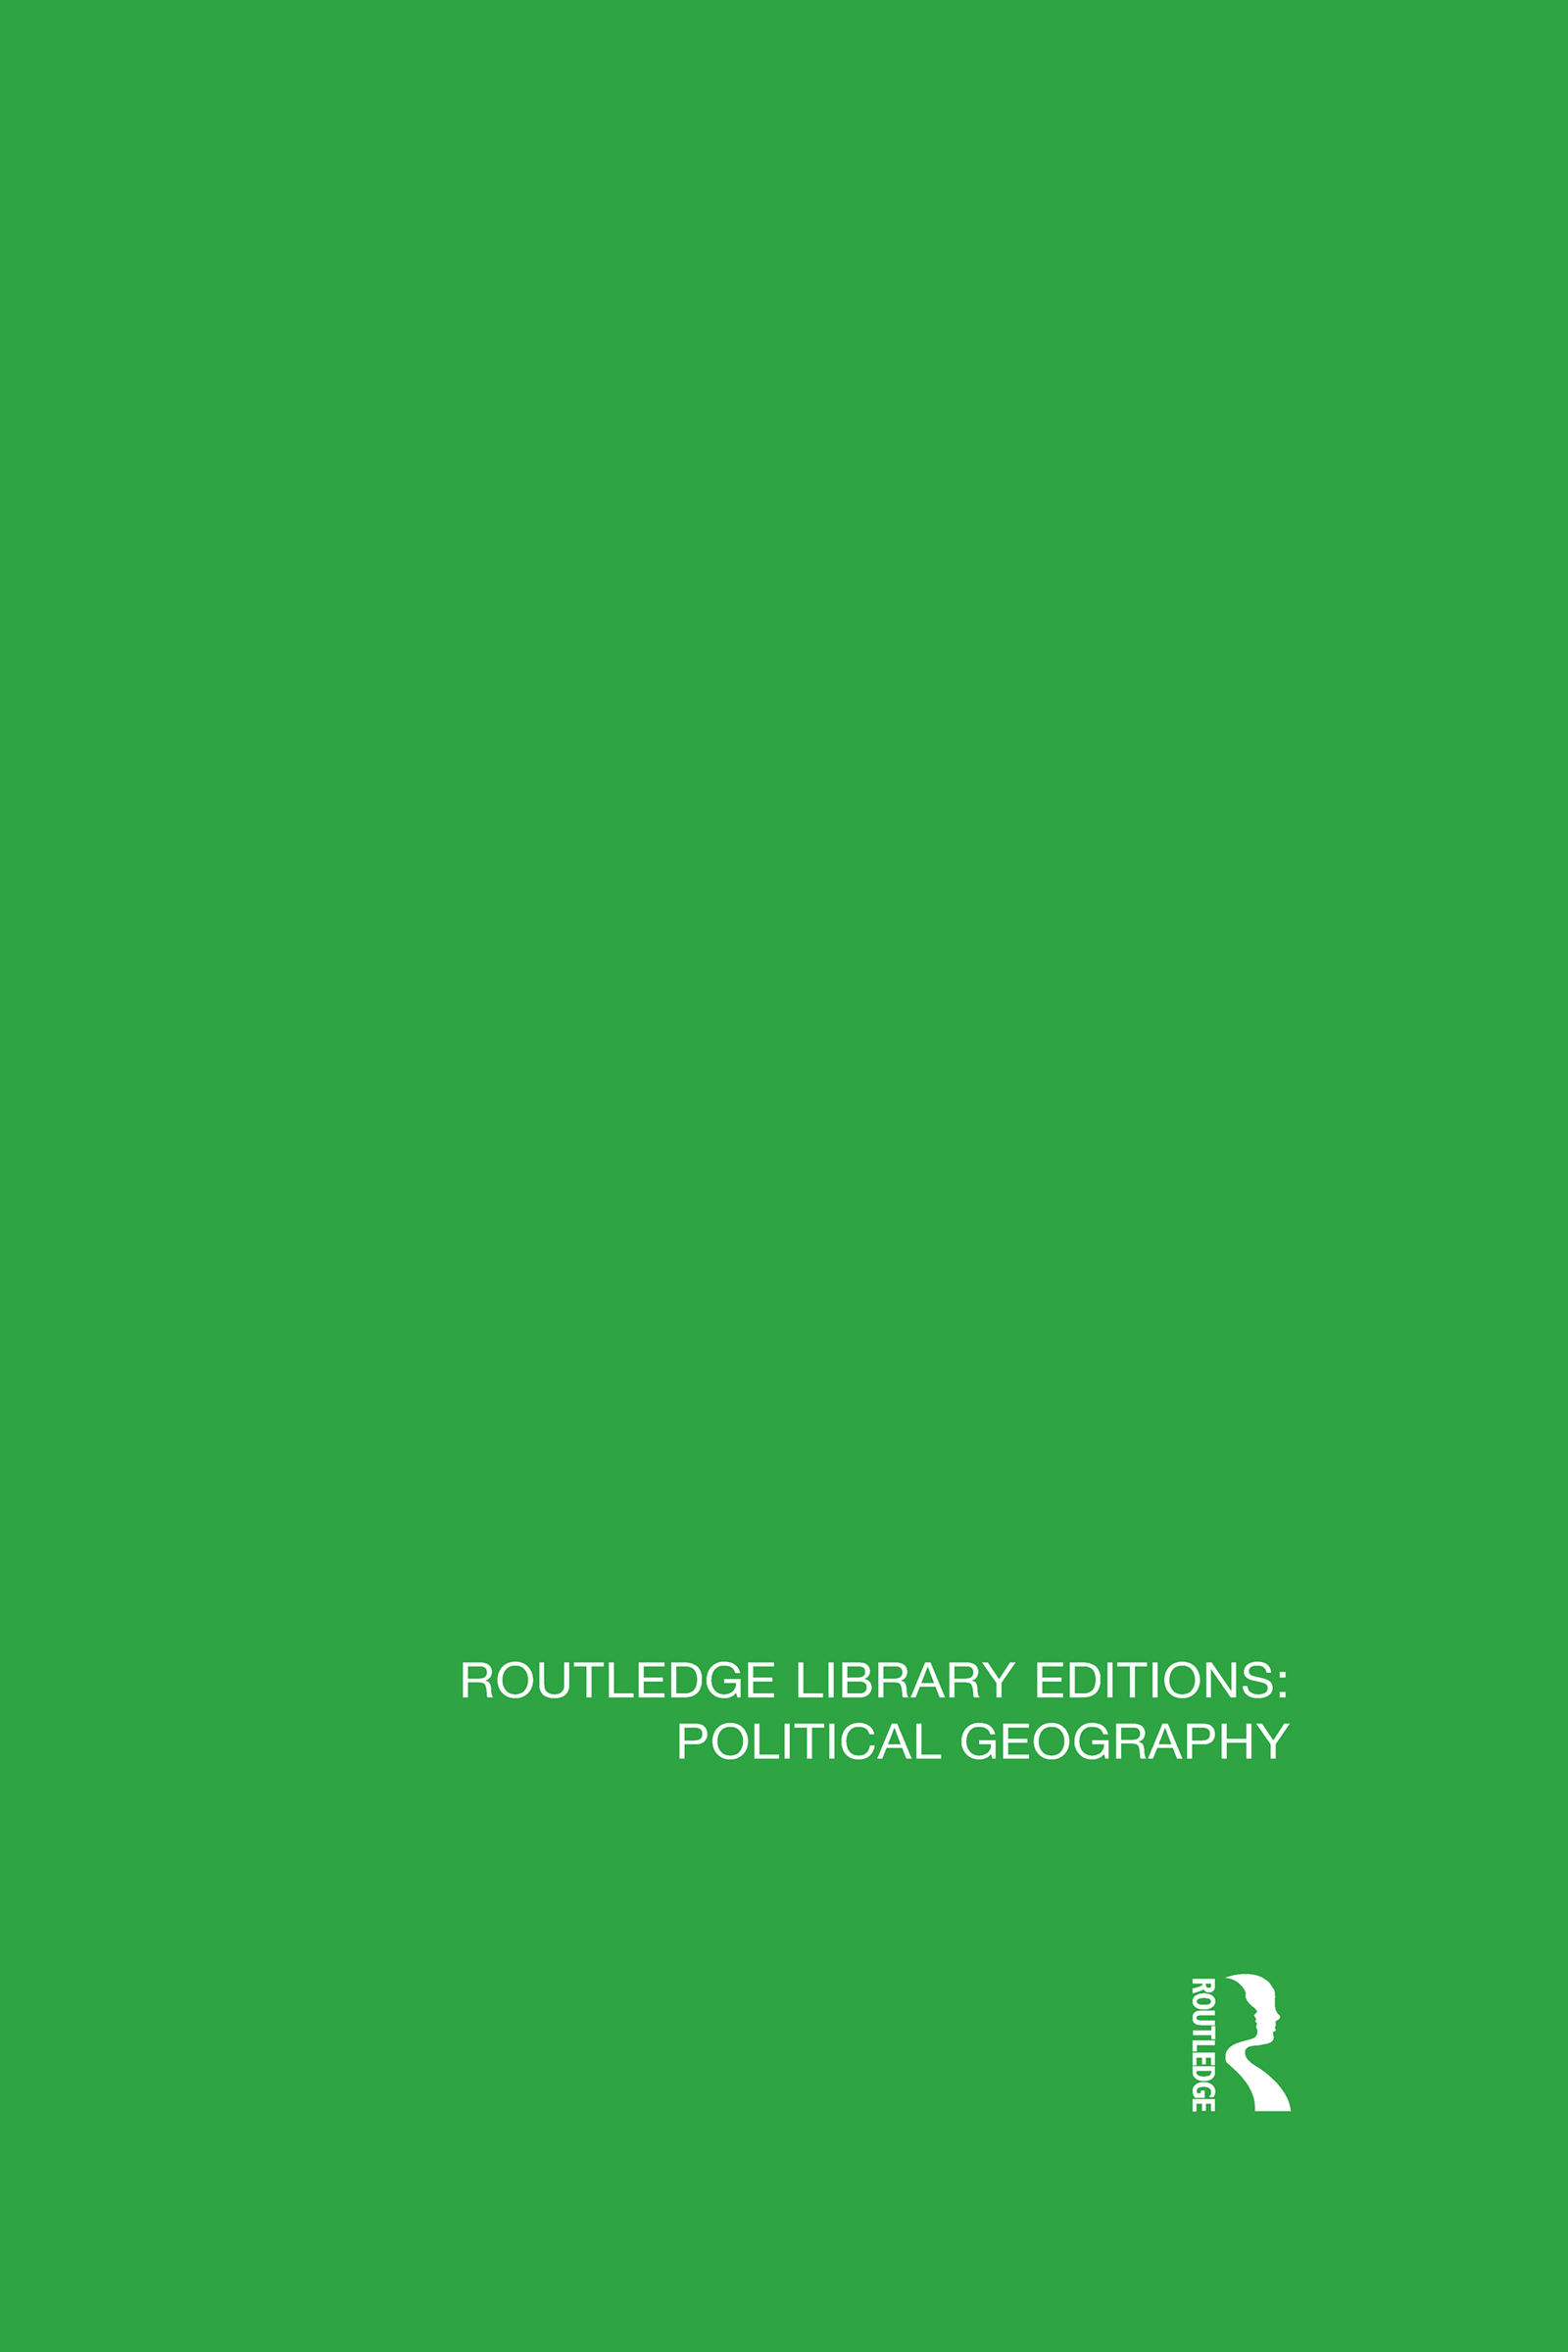 Routledge Library Editions: Political Geography book cover